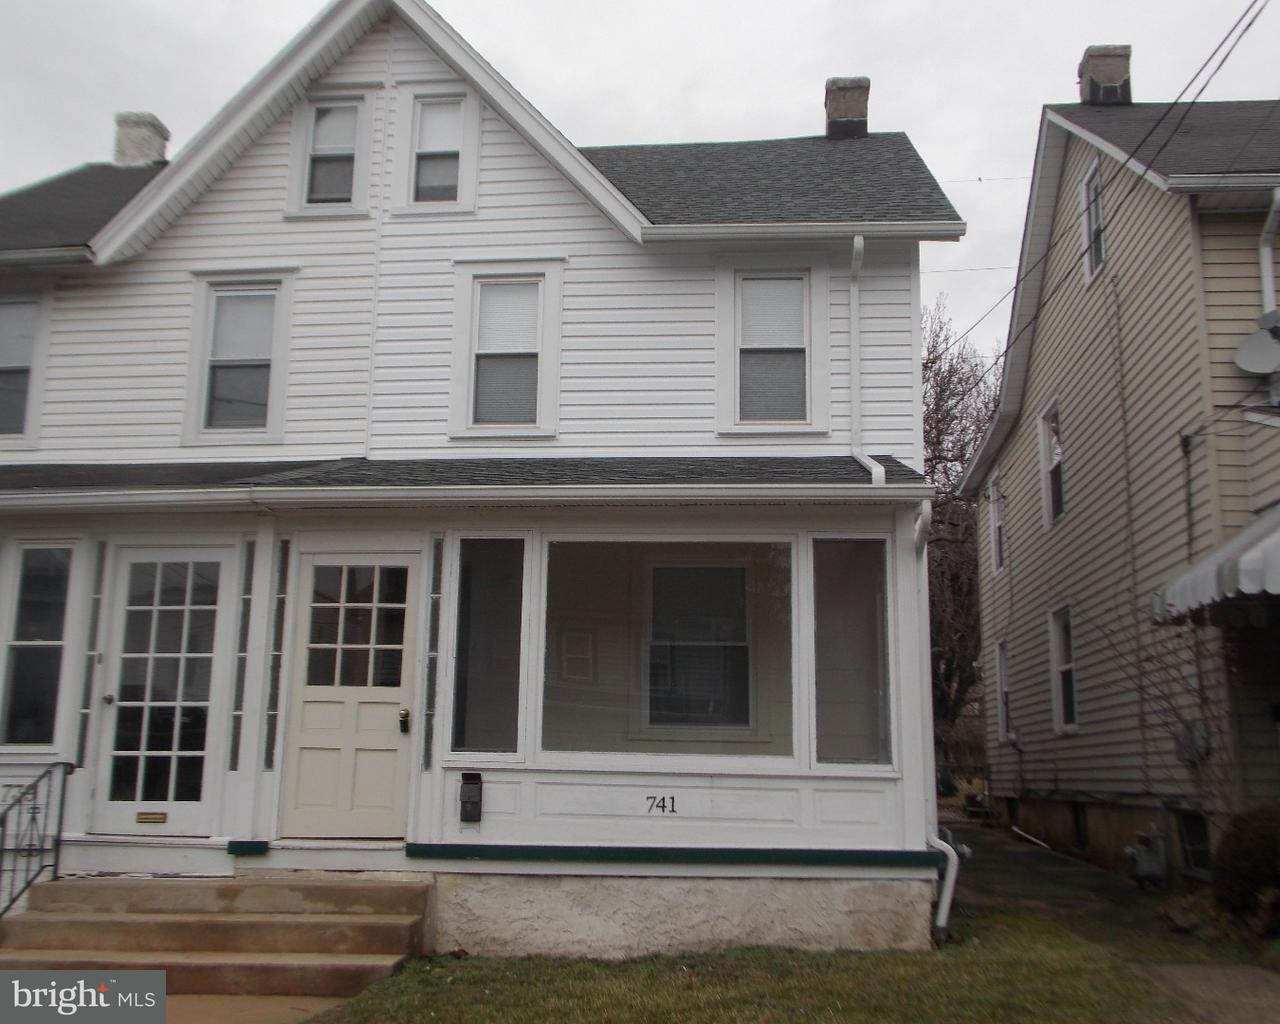 741 MERCHANT ST, COATESVILLE - Listed at $104,900, COATESVILLE